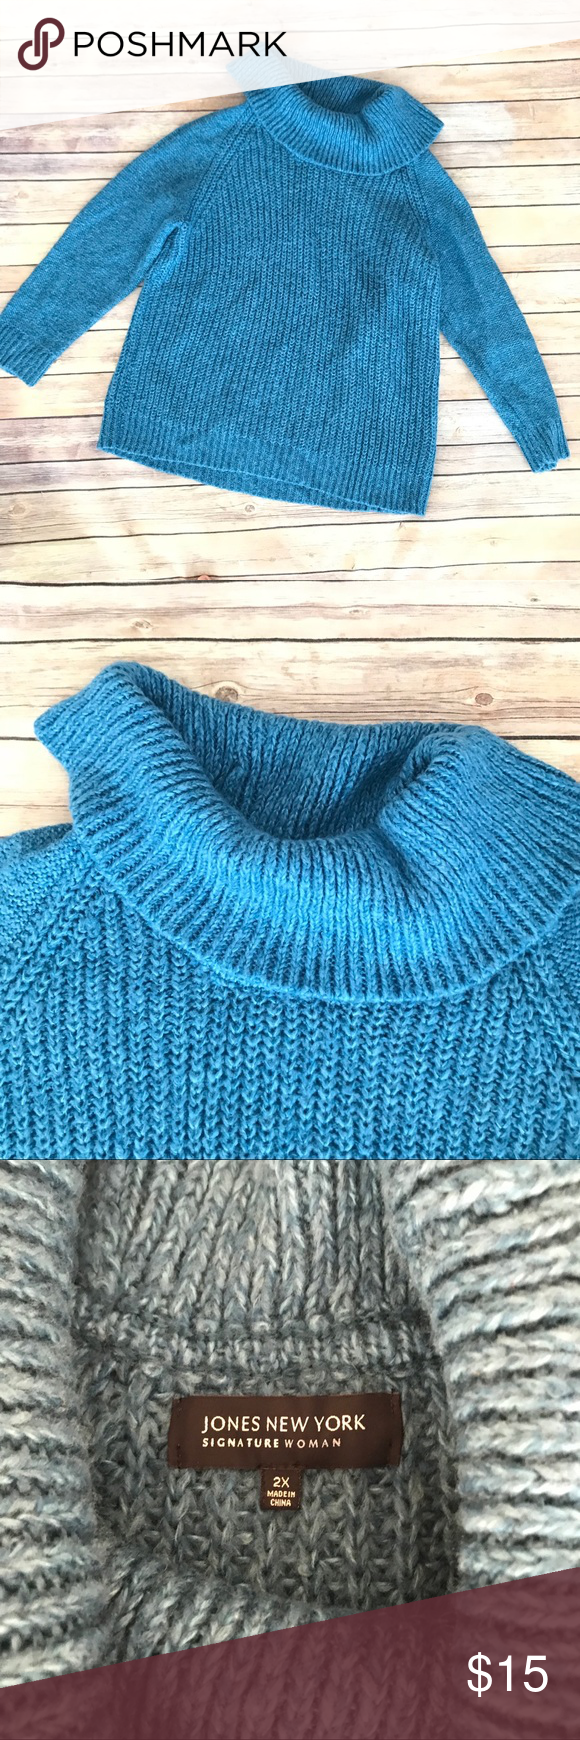 b911c3f93b Jones New York Woman Cowl Neck Sweater This sweater is a heavy knit  material and it will keep you nice and warm during the winter months!